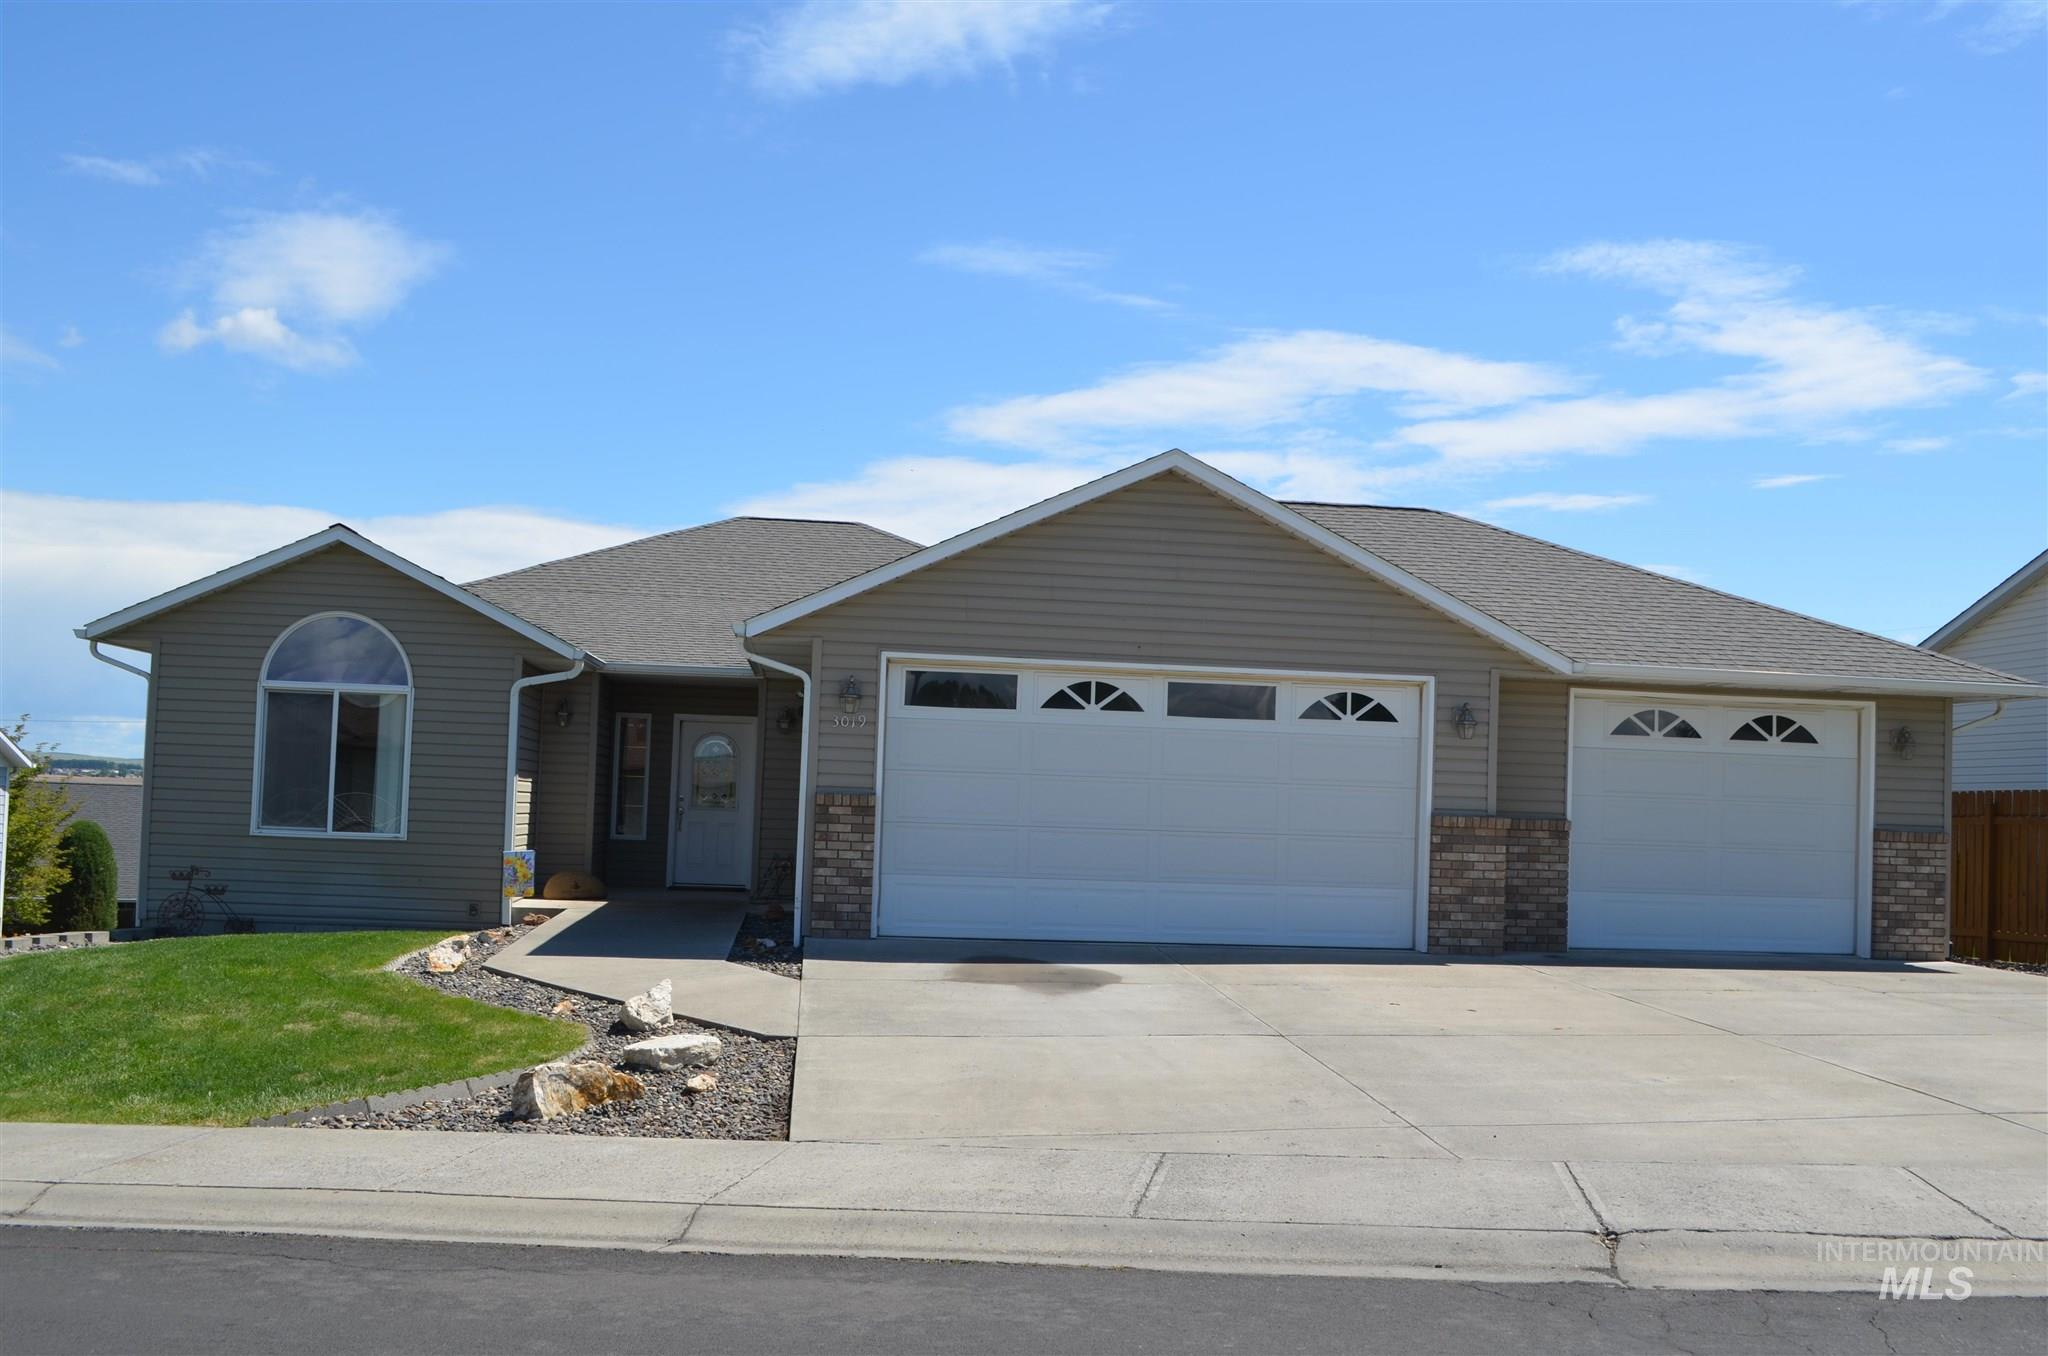 3019 Cypress St Property Photo - Lewiston, ID real estate listing